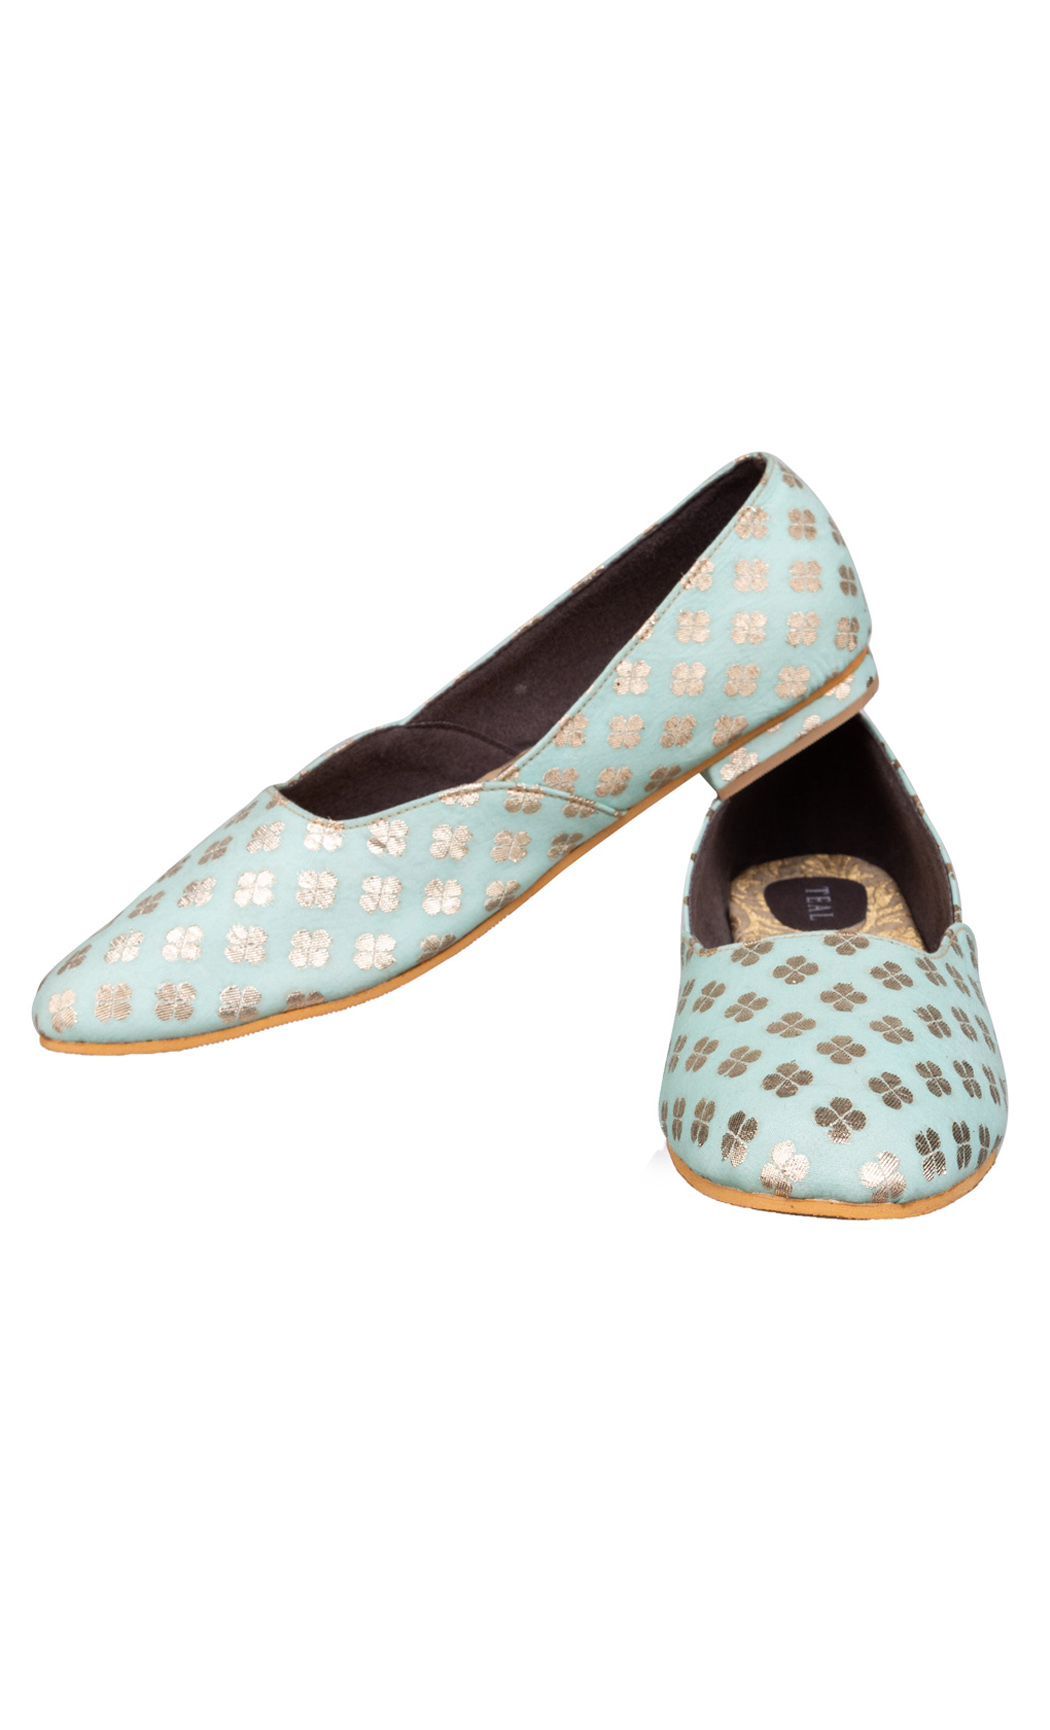 Aqua Pretty in Pastel Ballerinas - Buy Online